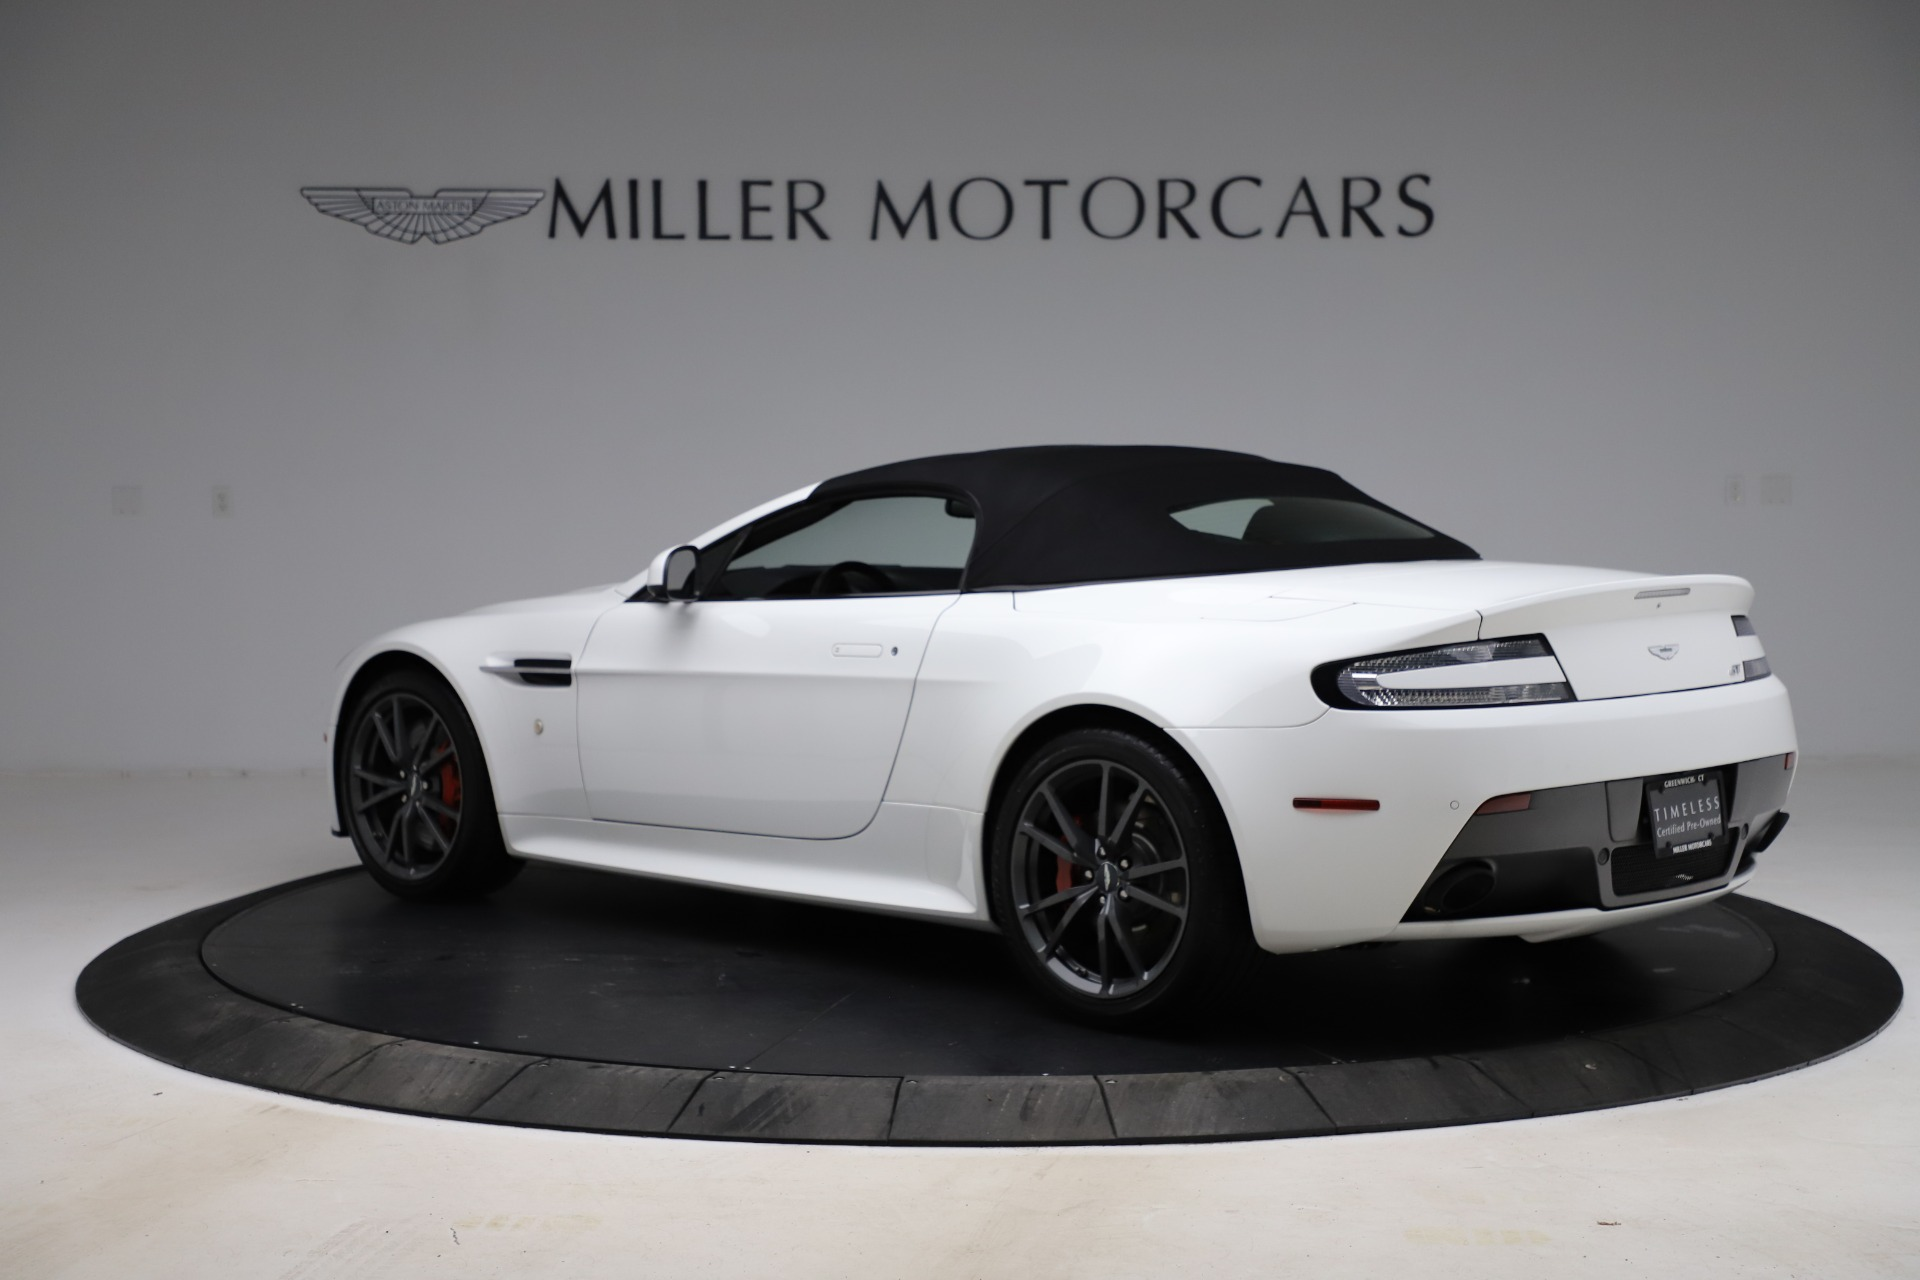 New 2015 Aston Martin Vantage GT GT Roadster For Sale In Westport, CT 93_p27